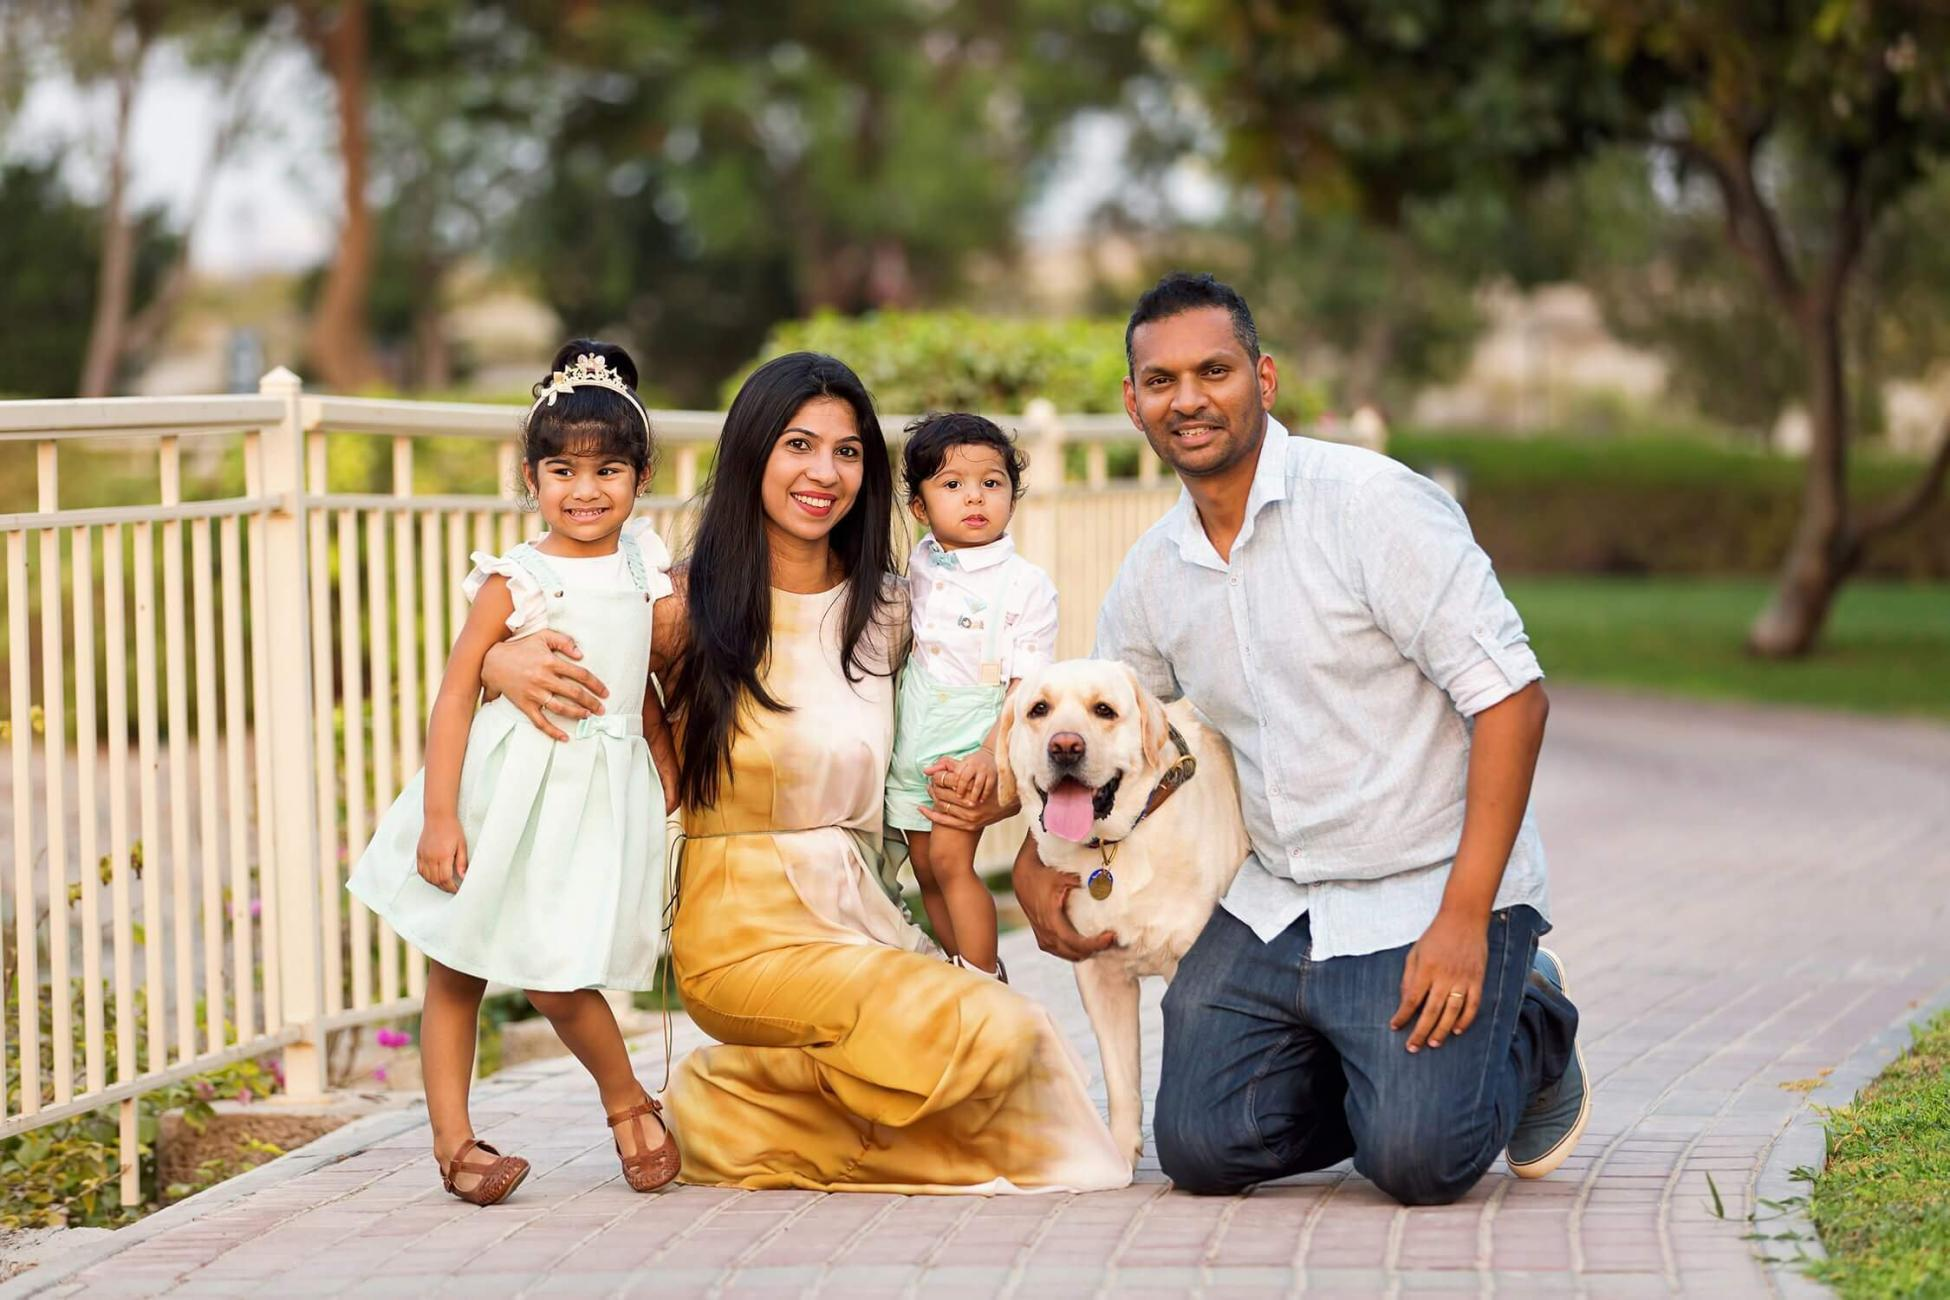 Family photoshoot in Springs community in Dubai